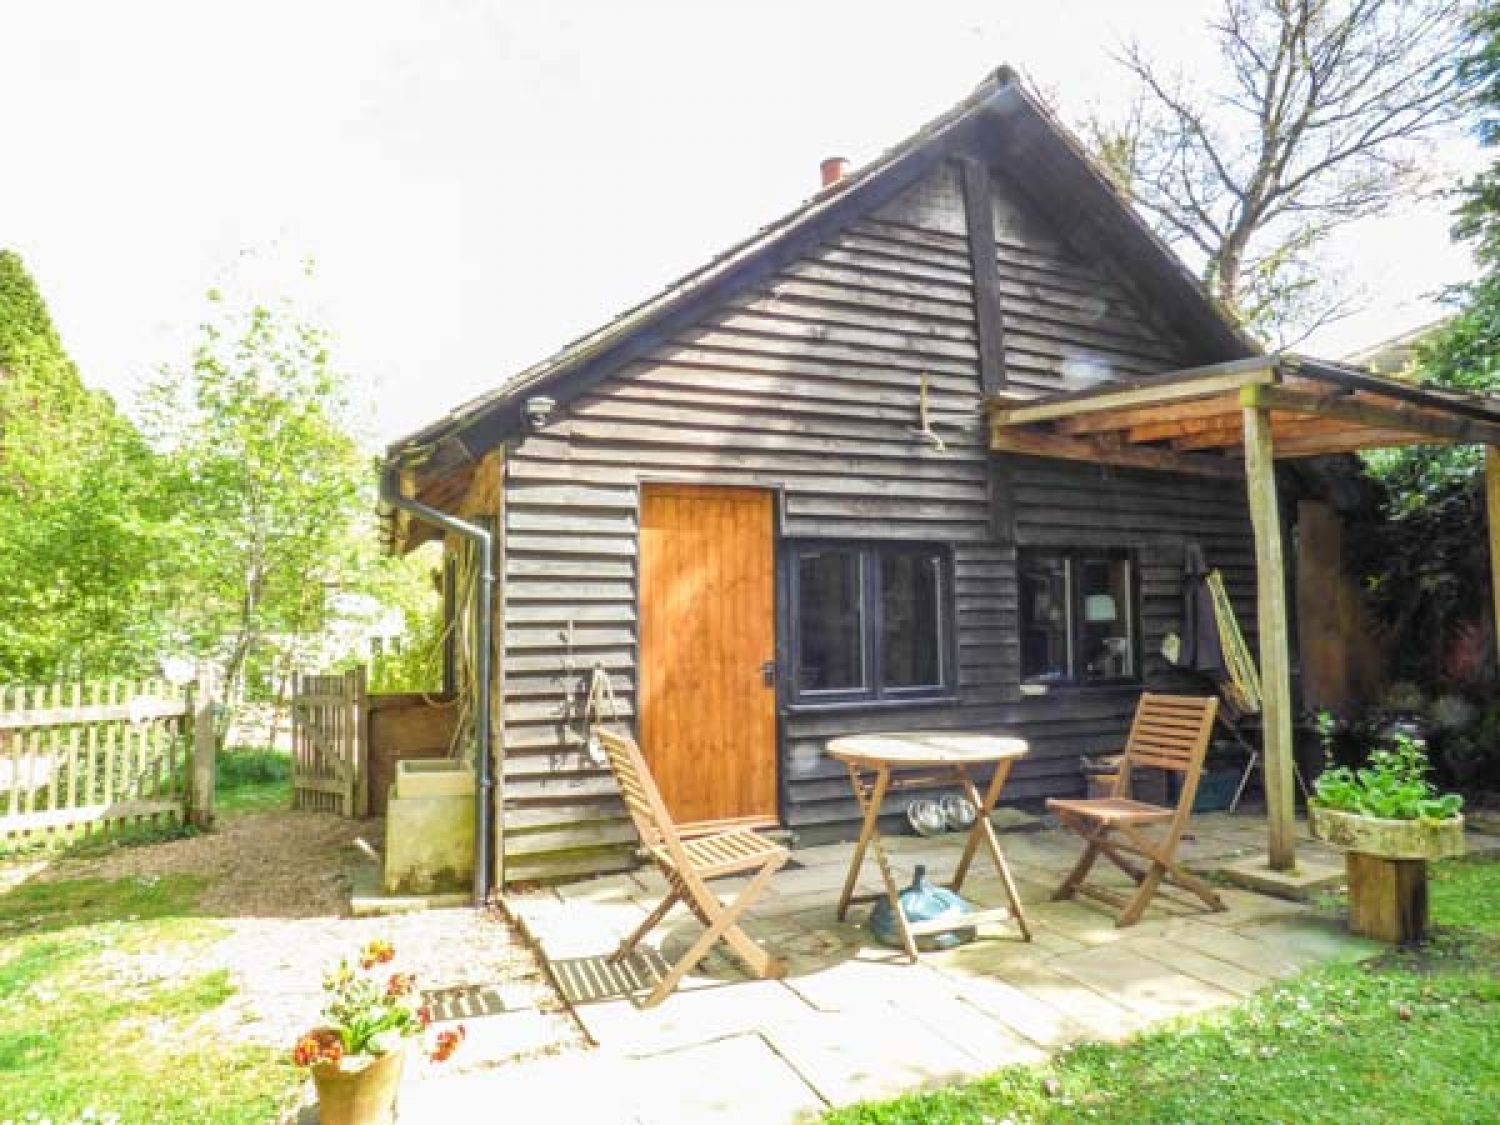 Endymion Holiday Lodges in Dorset